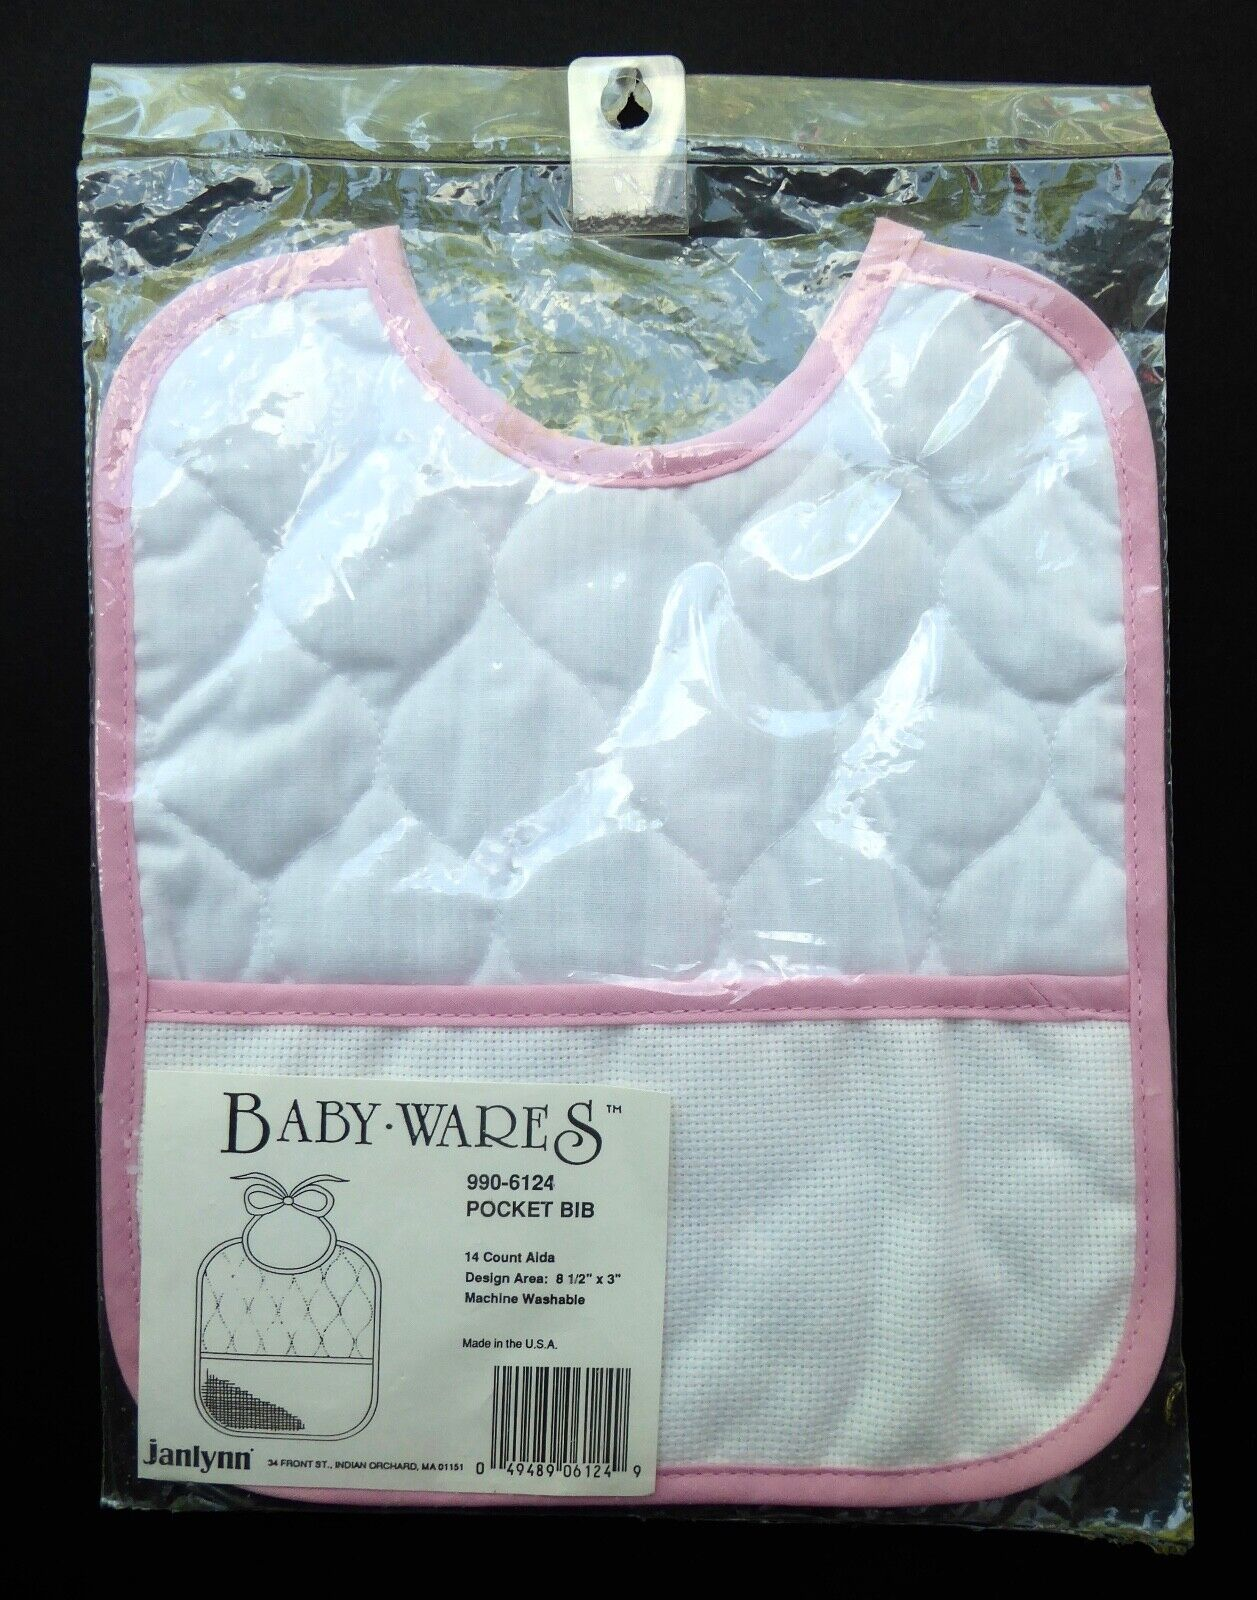 JANLYNN Baby Personal Wares Quilted Baby Bib W/ Cross Stitch